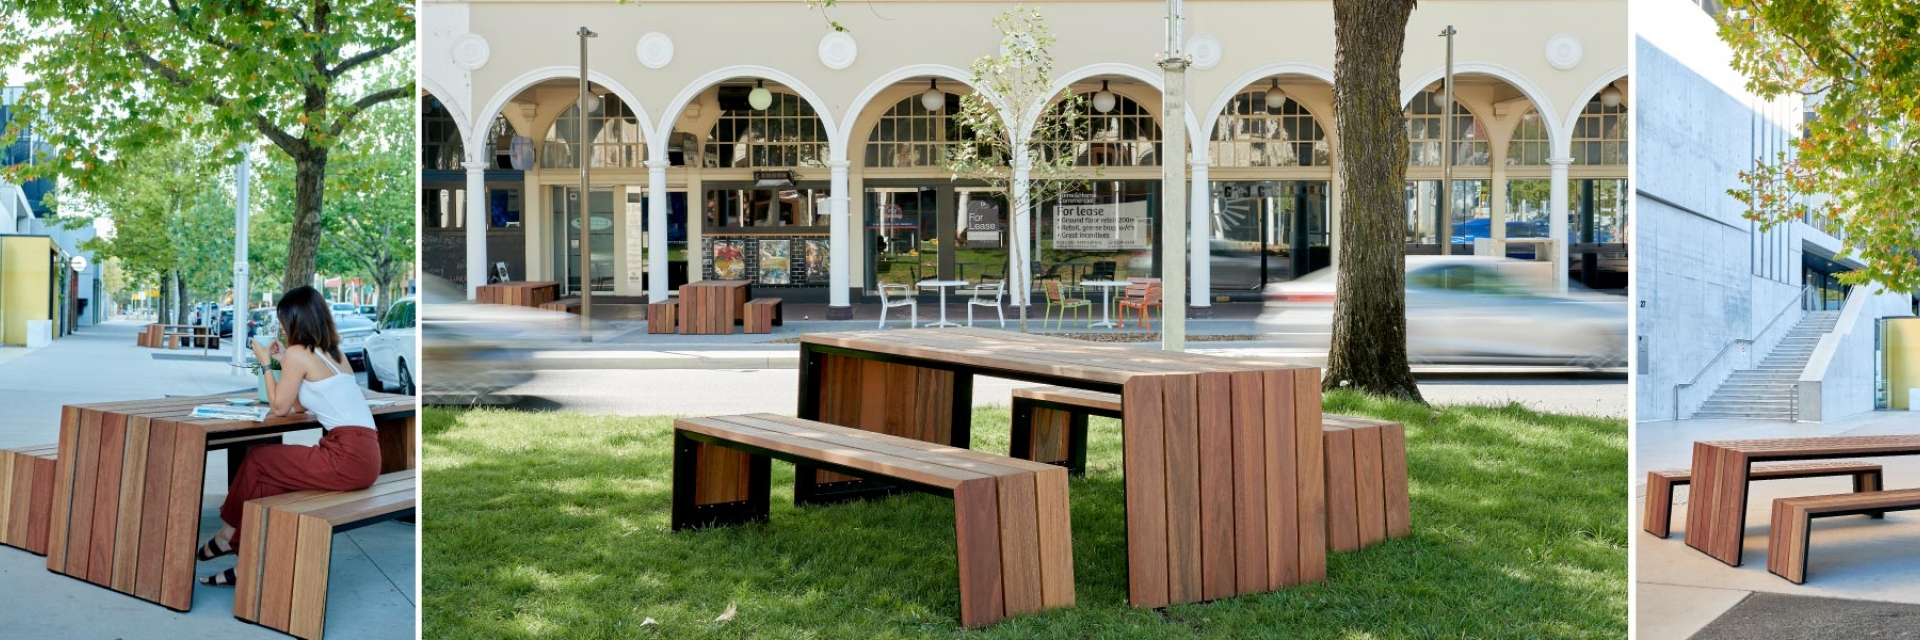 Australian Outdoor Furniture brand Tait